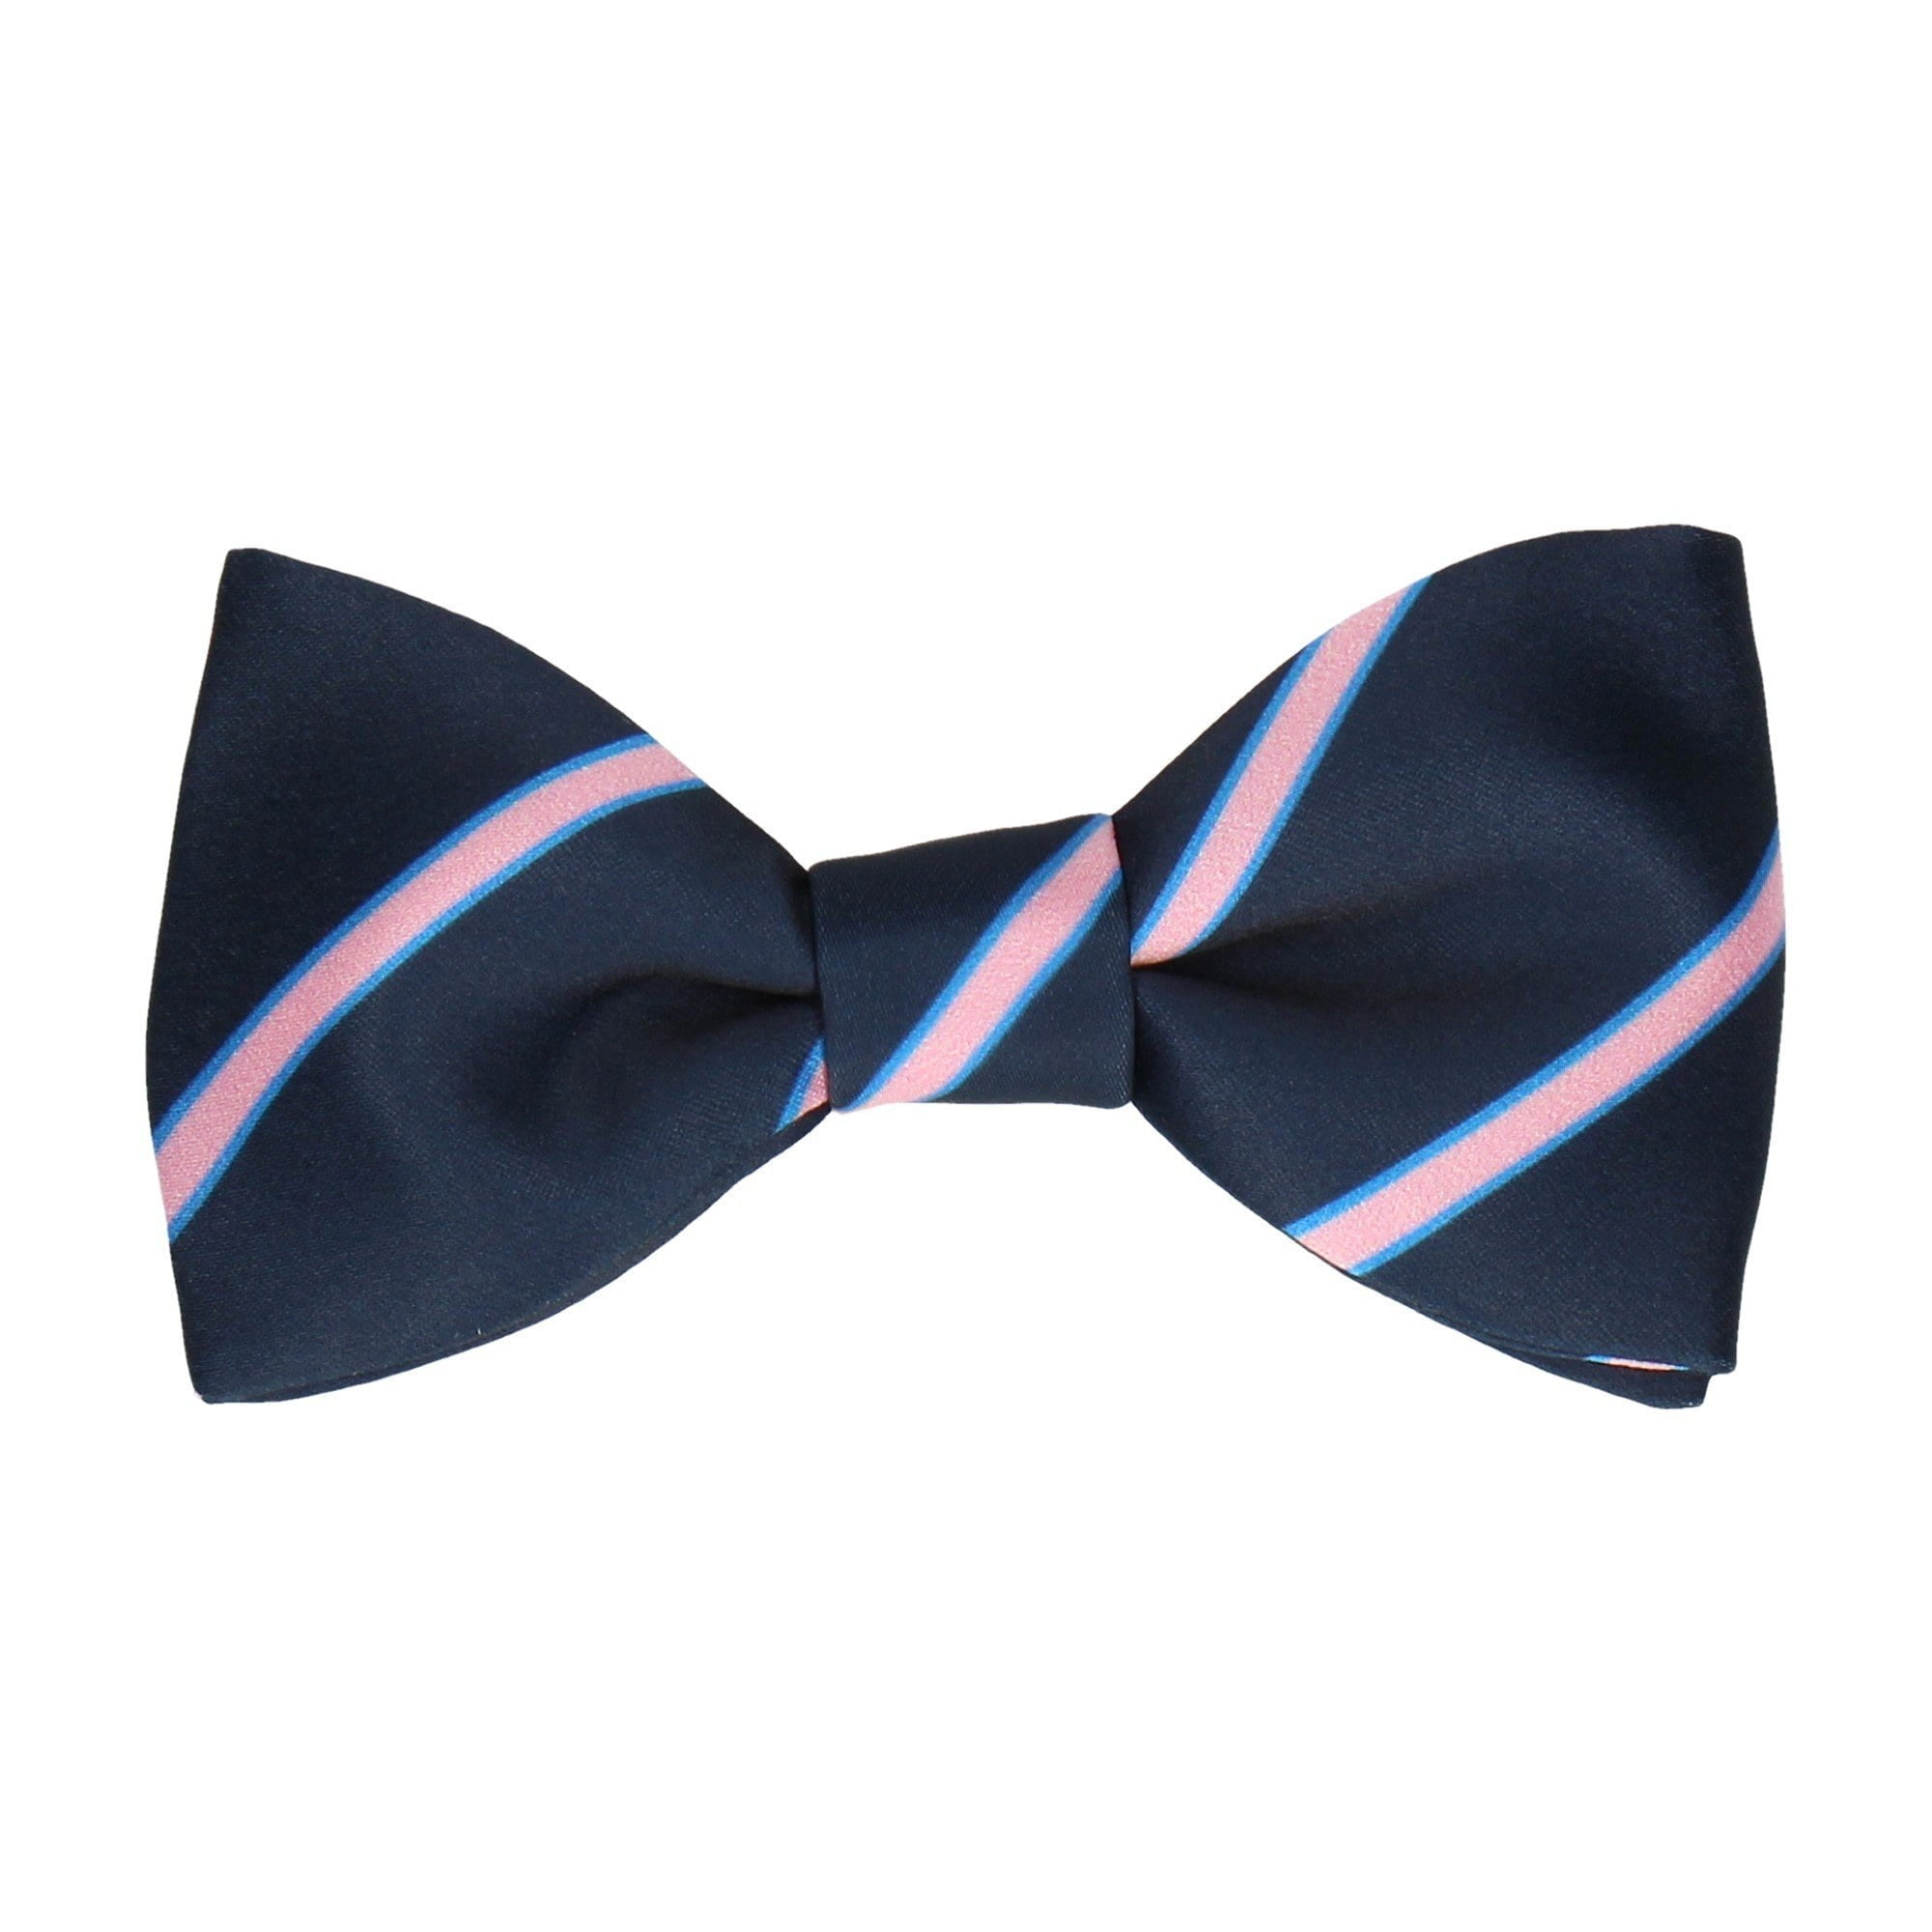 Doxford in Navy & Pink Bow Tie